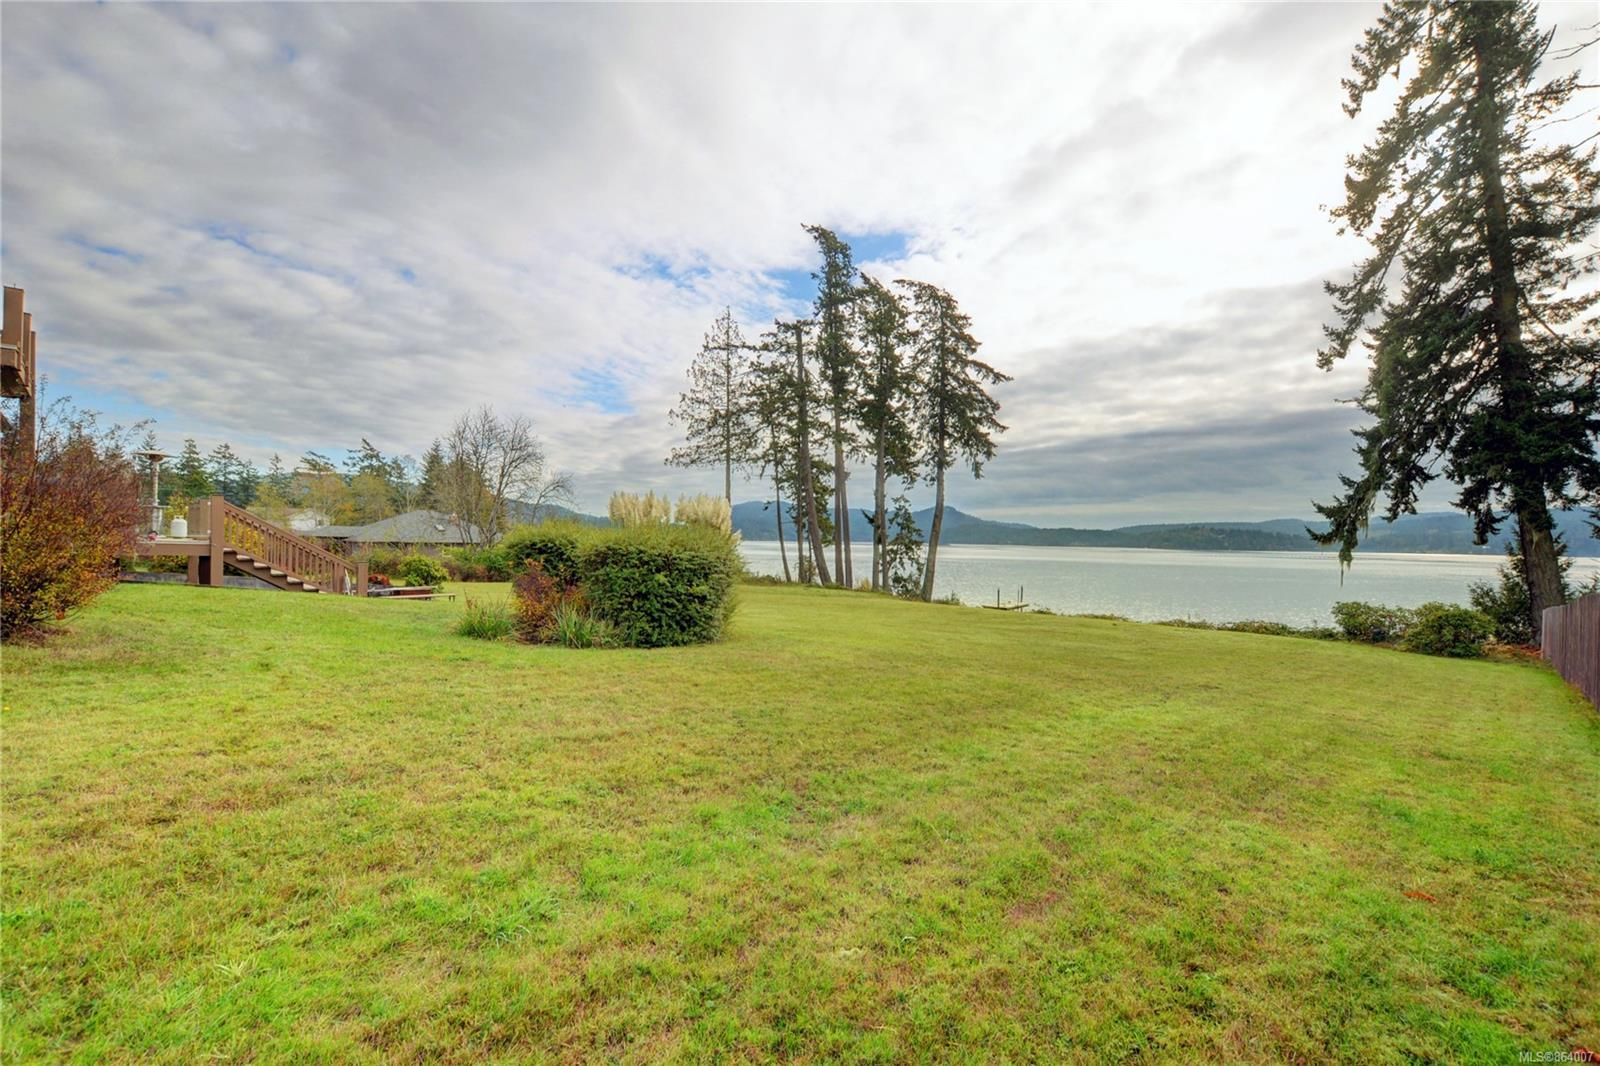 Photo 3: Photos: 5697 Sooke Rd in : Sk Saseenos House for sale (Sooke)  : MLS®# 864007